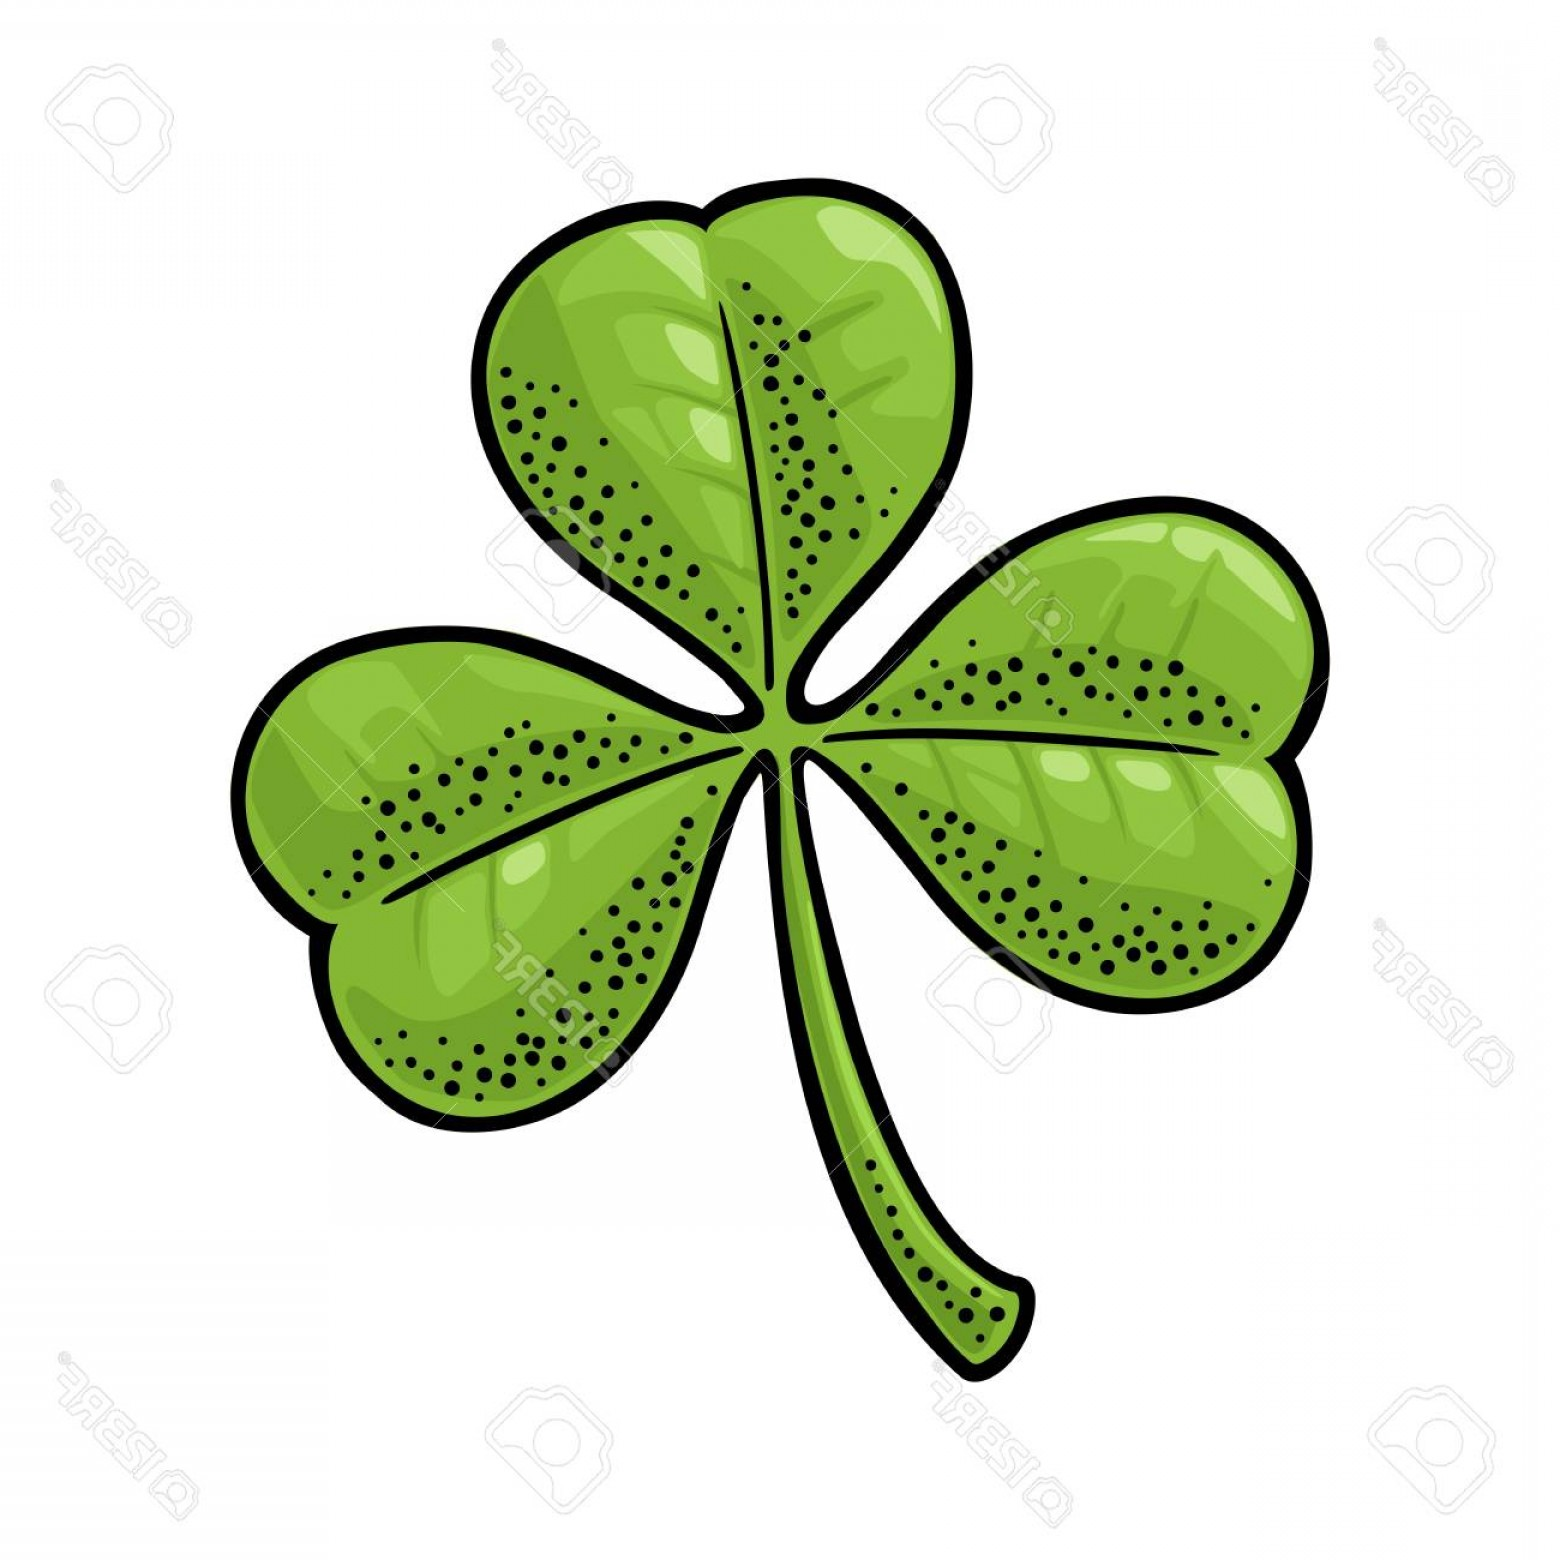 Shamrock Vector Art Vintage: Photostock Vector Three Leaf Clover Vintage Color Vector Engraving Illustration Isolated On White Background Hand Draw